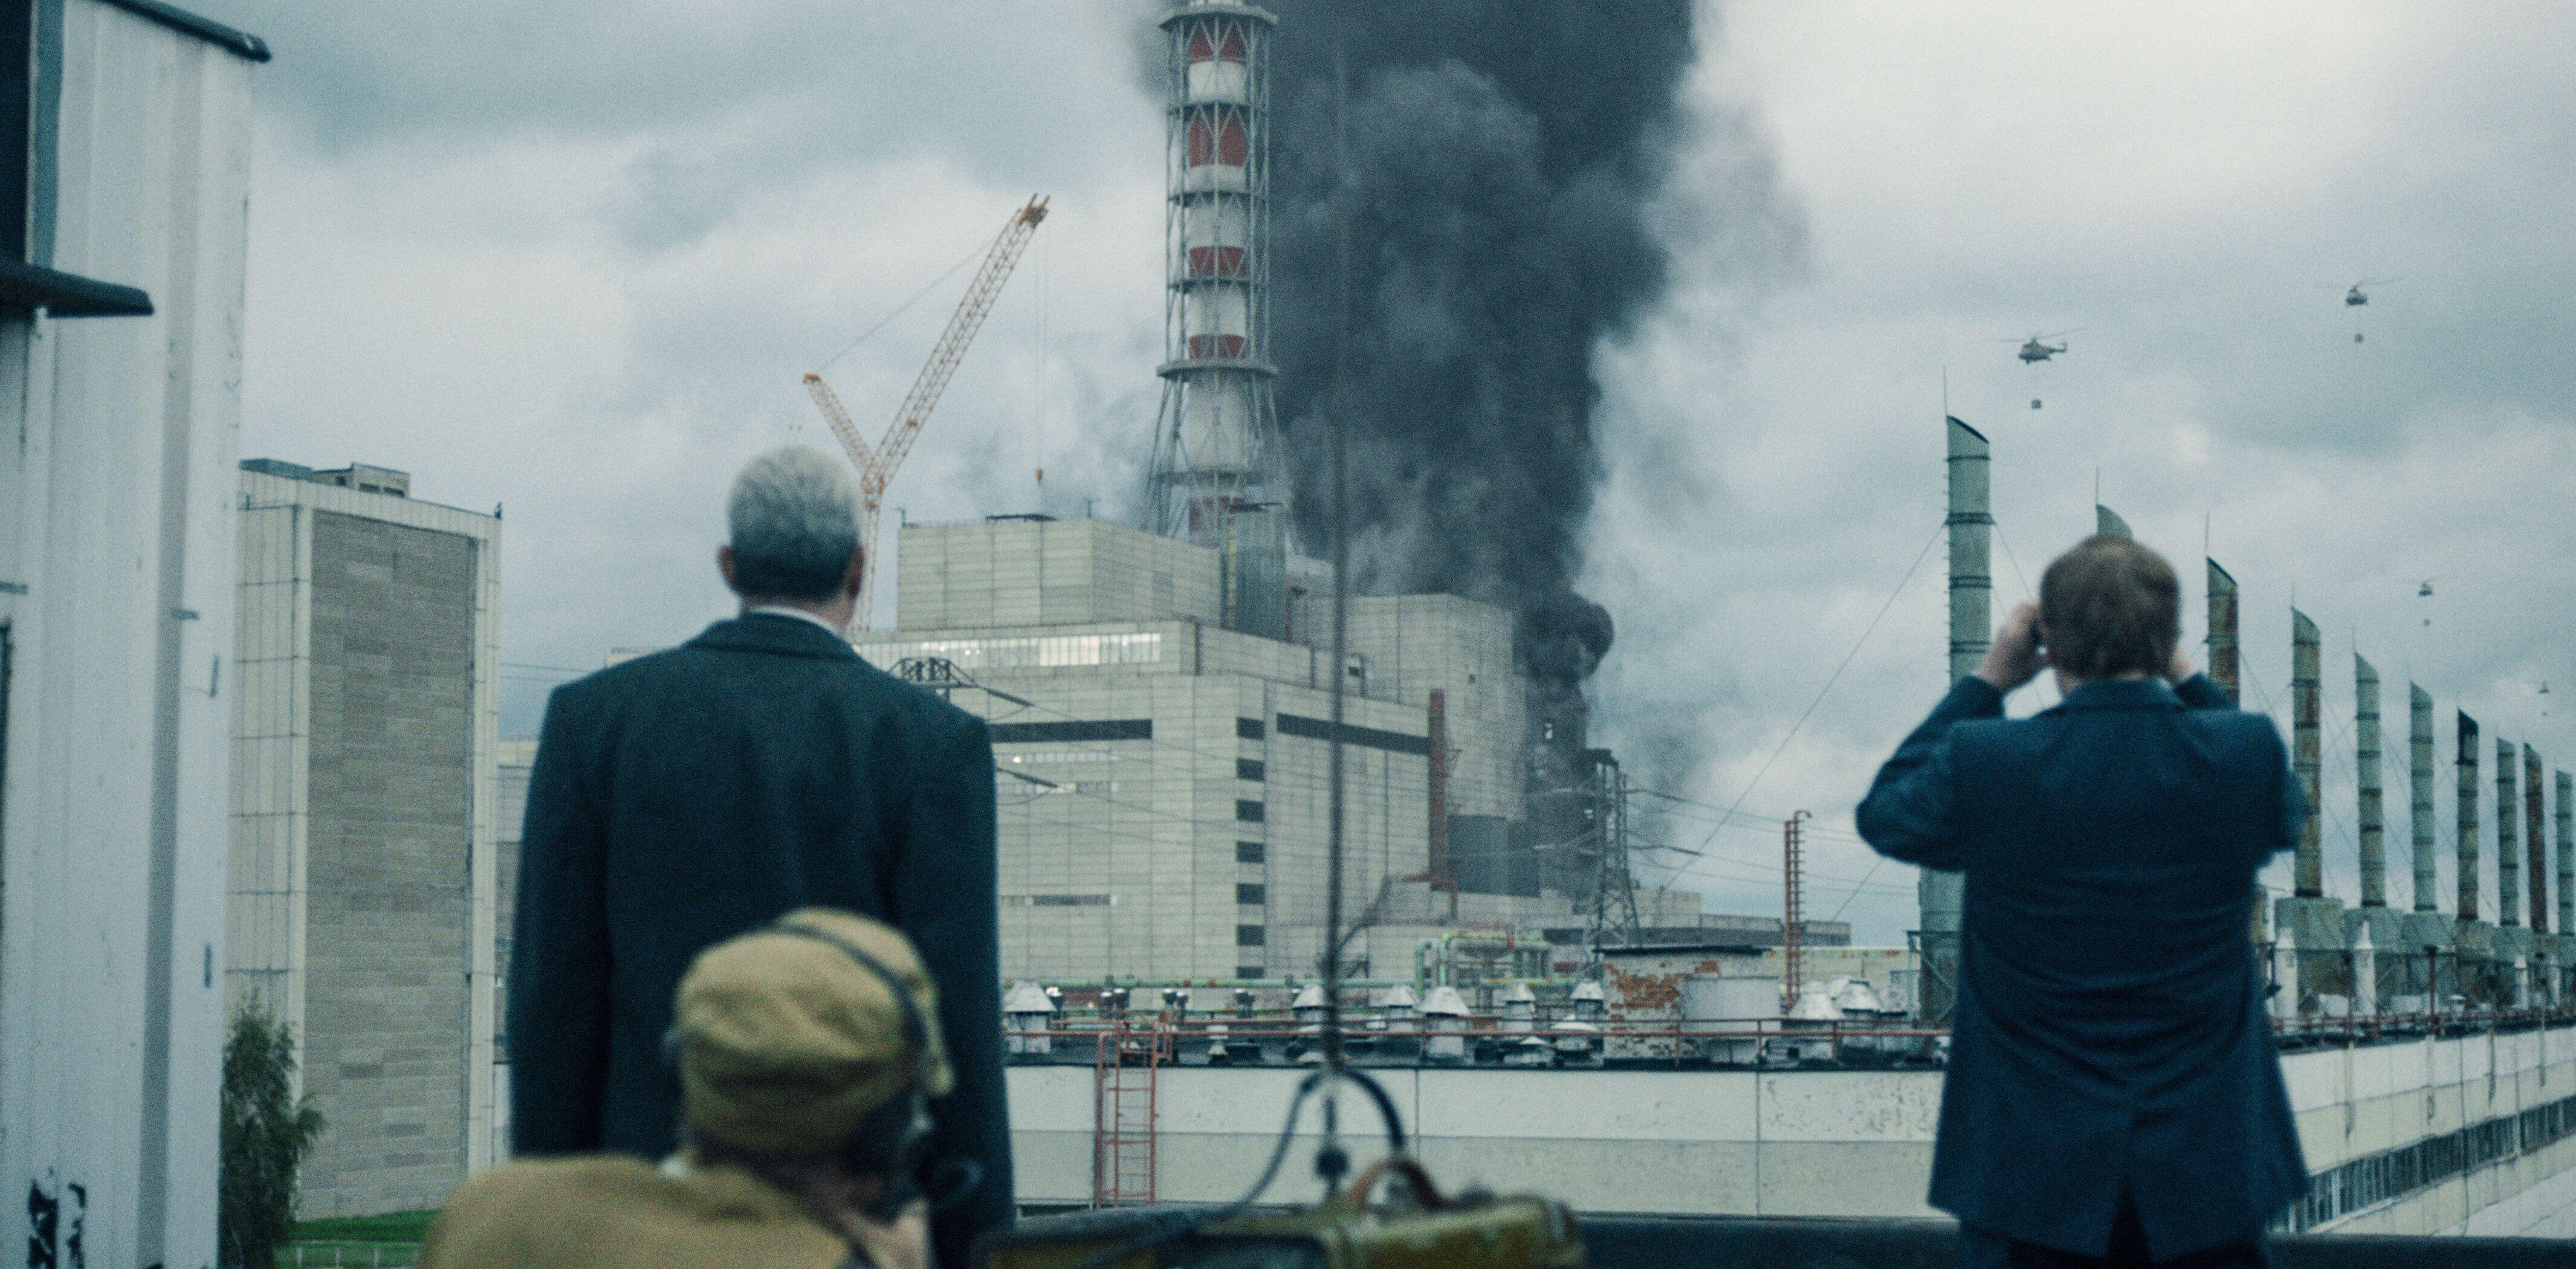 'Chernobyl': How historically accurate is the hit HBO miniseries?